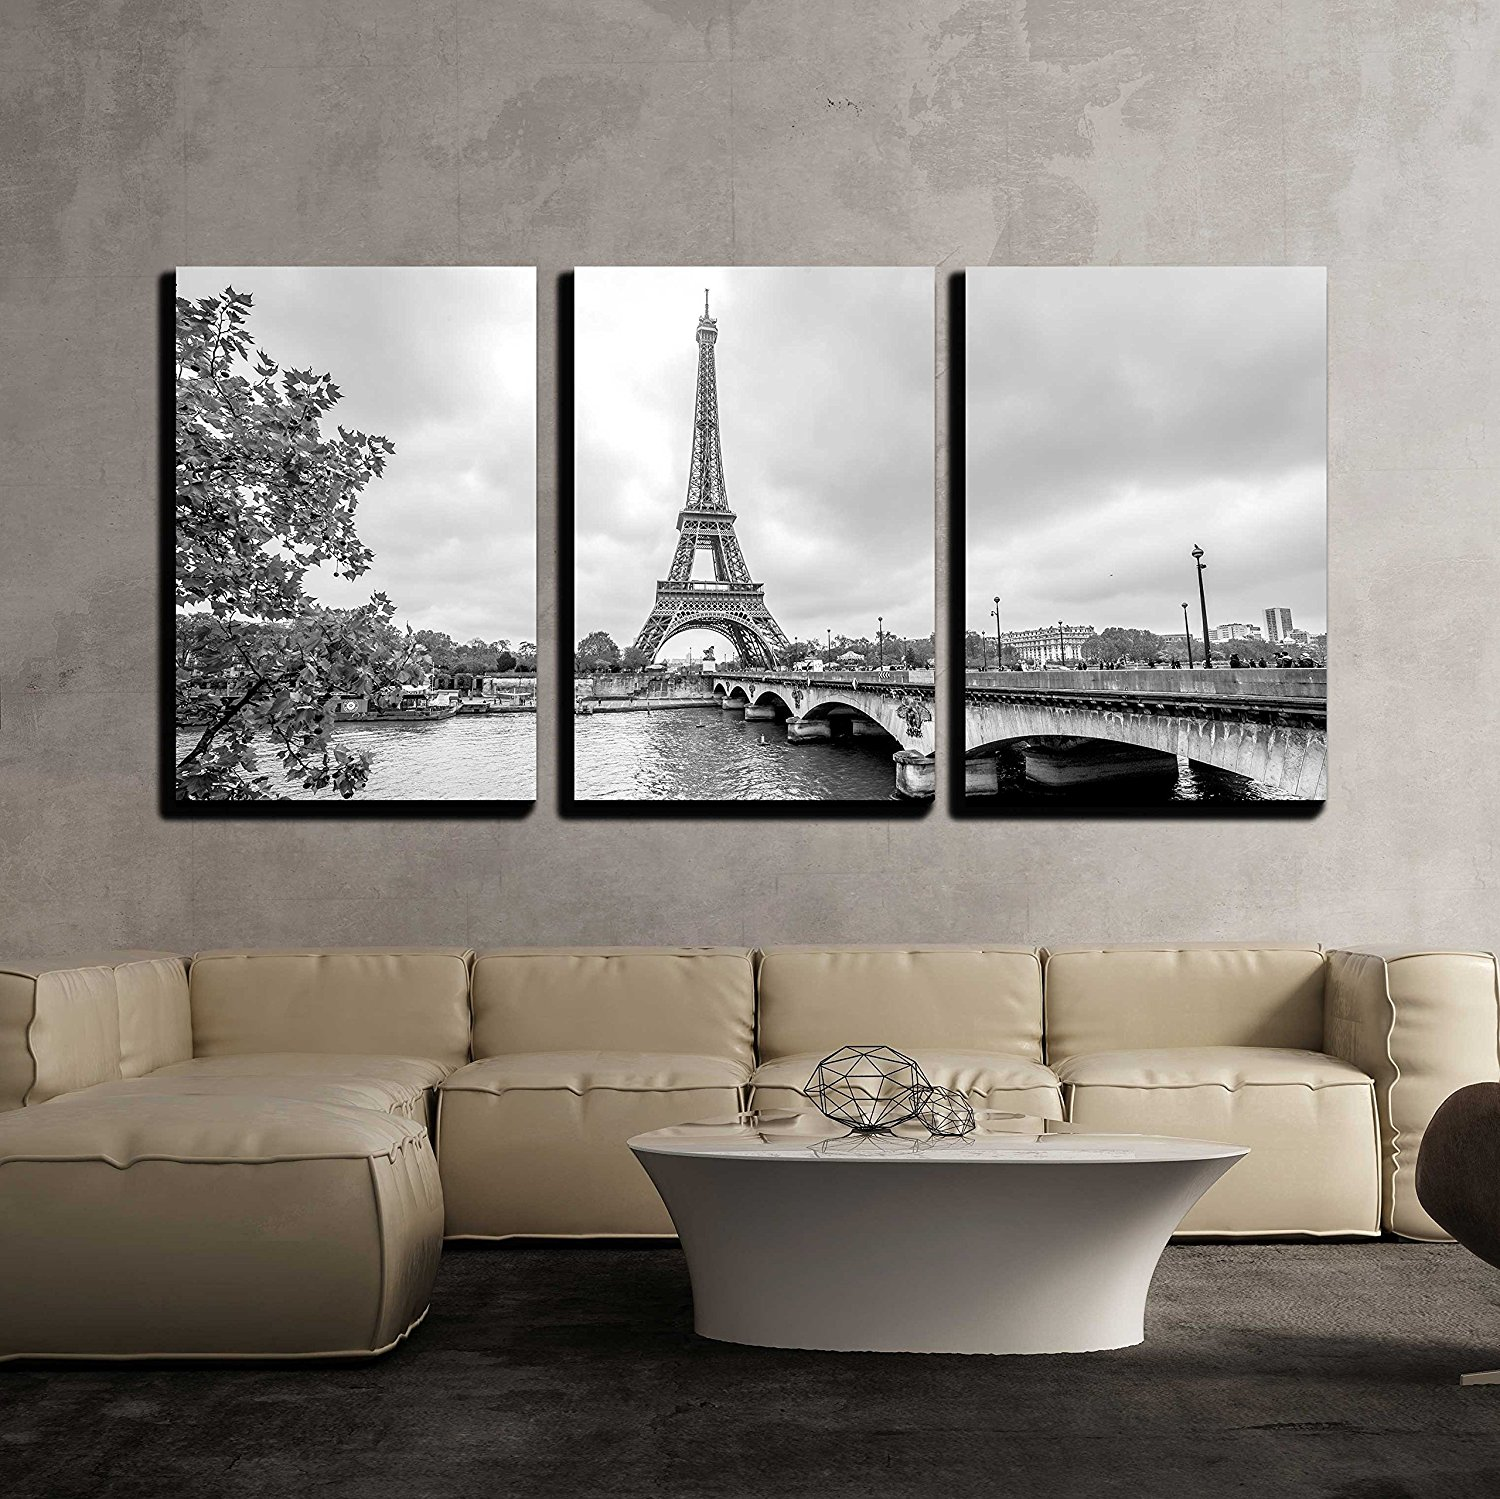 "wall26 - 3 Piece Canvas Wall Art - Paris Eiffel Tower from Seine. Cityscape in Black and White - Modern Home Decor Stretched and Framed Ready to Hang - 16""x24""x3 Panels"